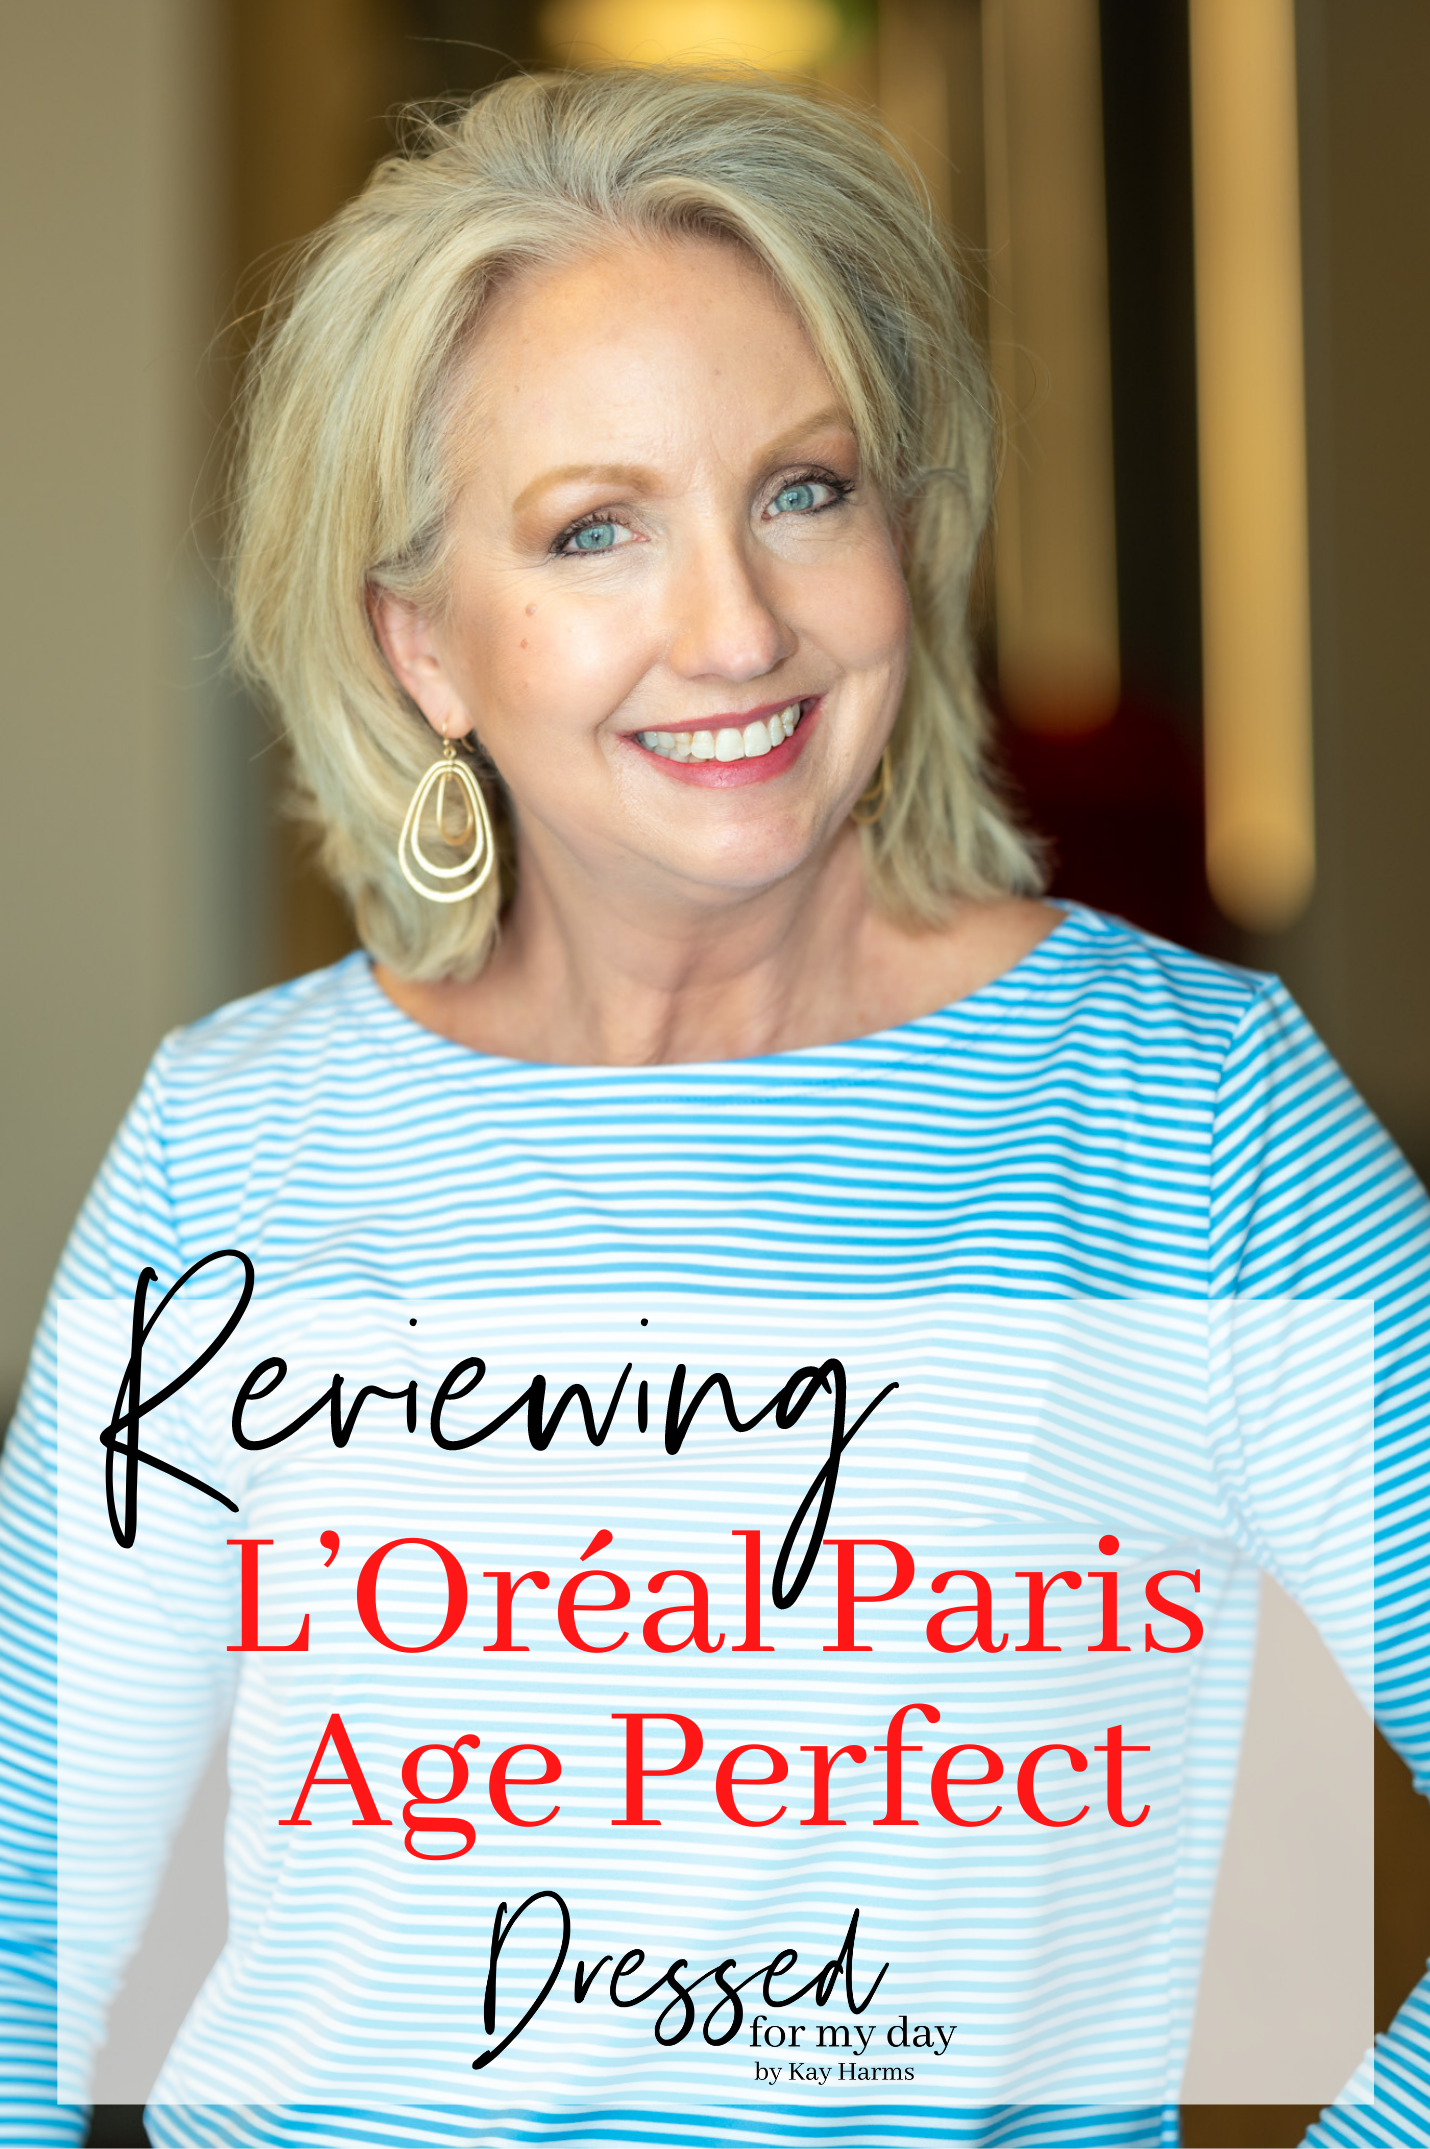 Reviewing L'Oreal Paris Age Perfect Skin Care & foundation